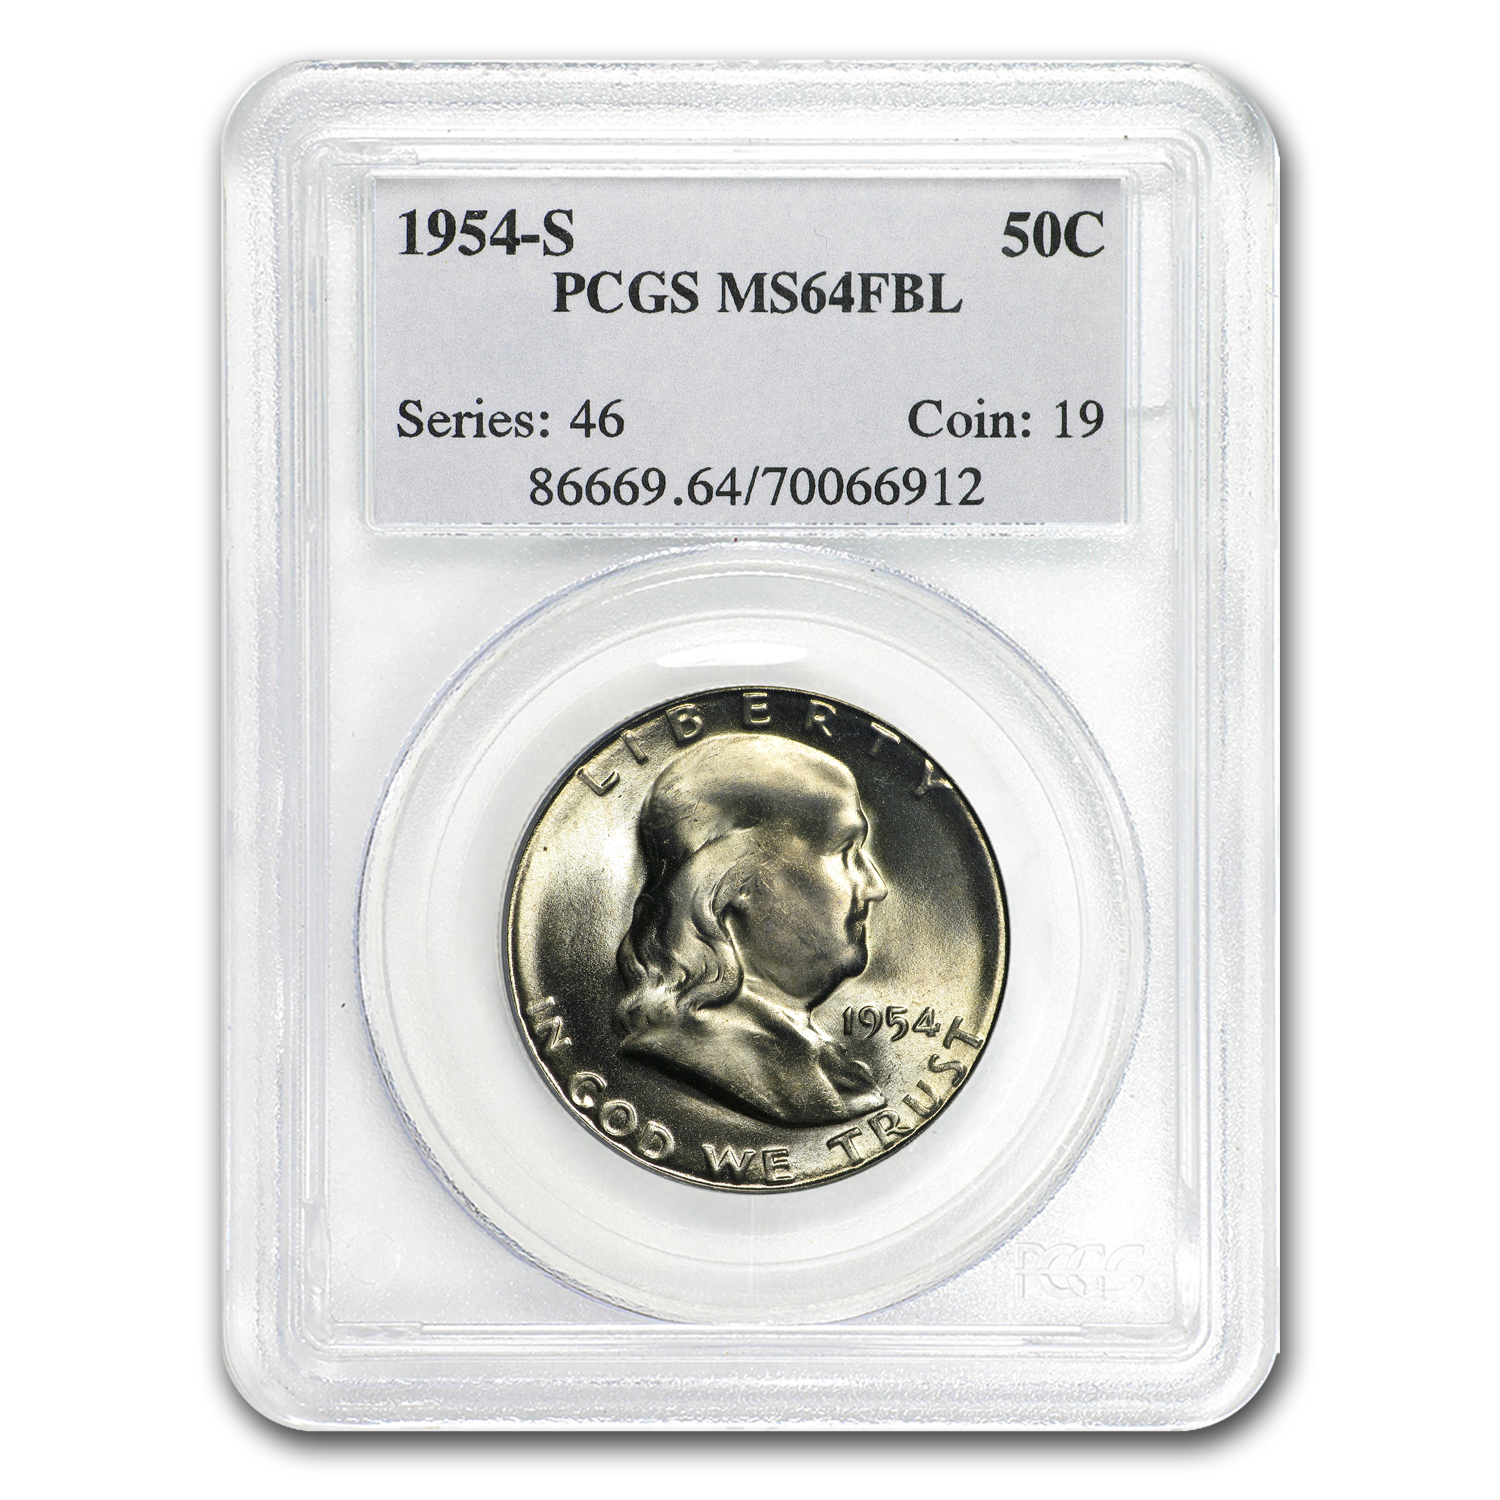 1954-S Franklin Half Dollar MS-64 PCGS (FBL)